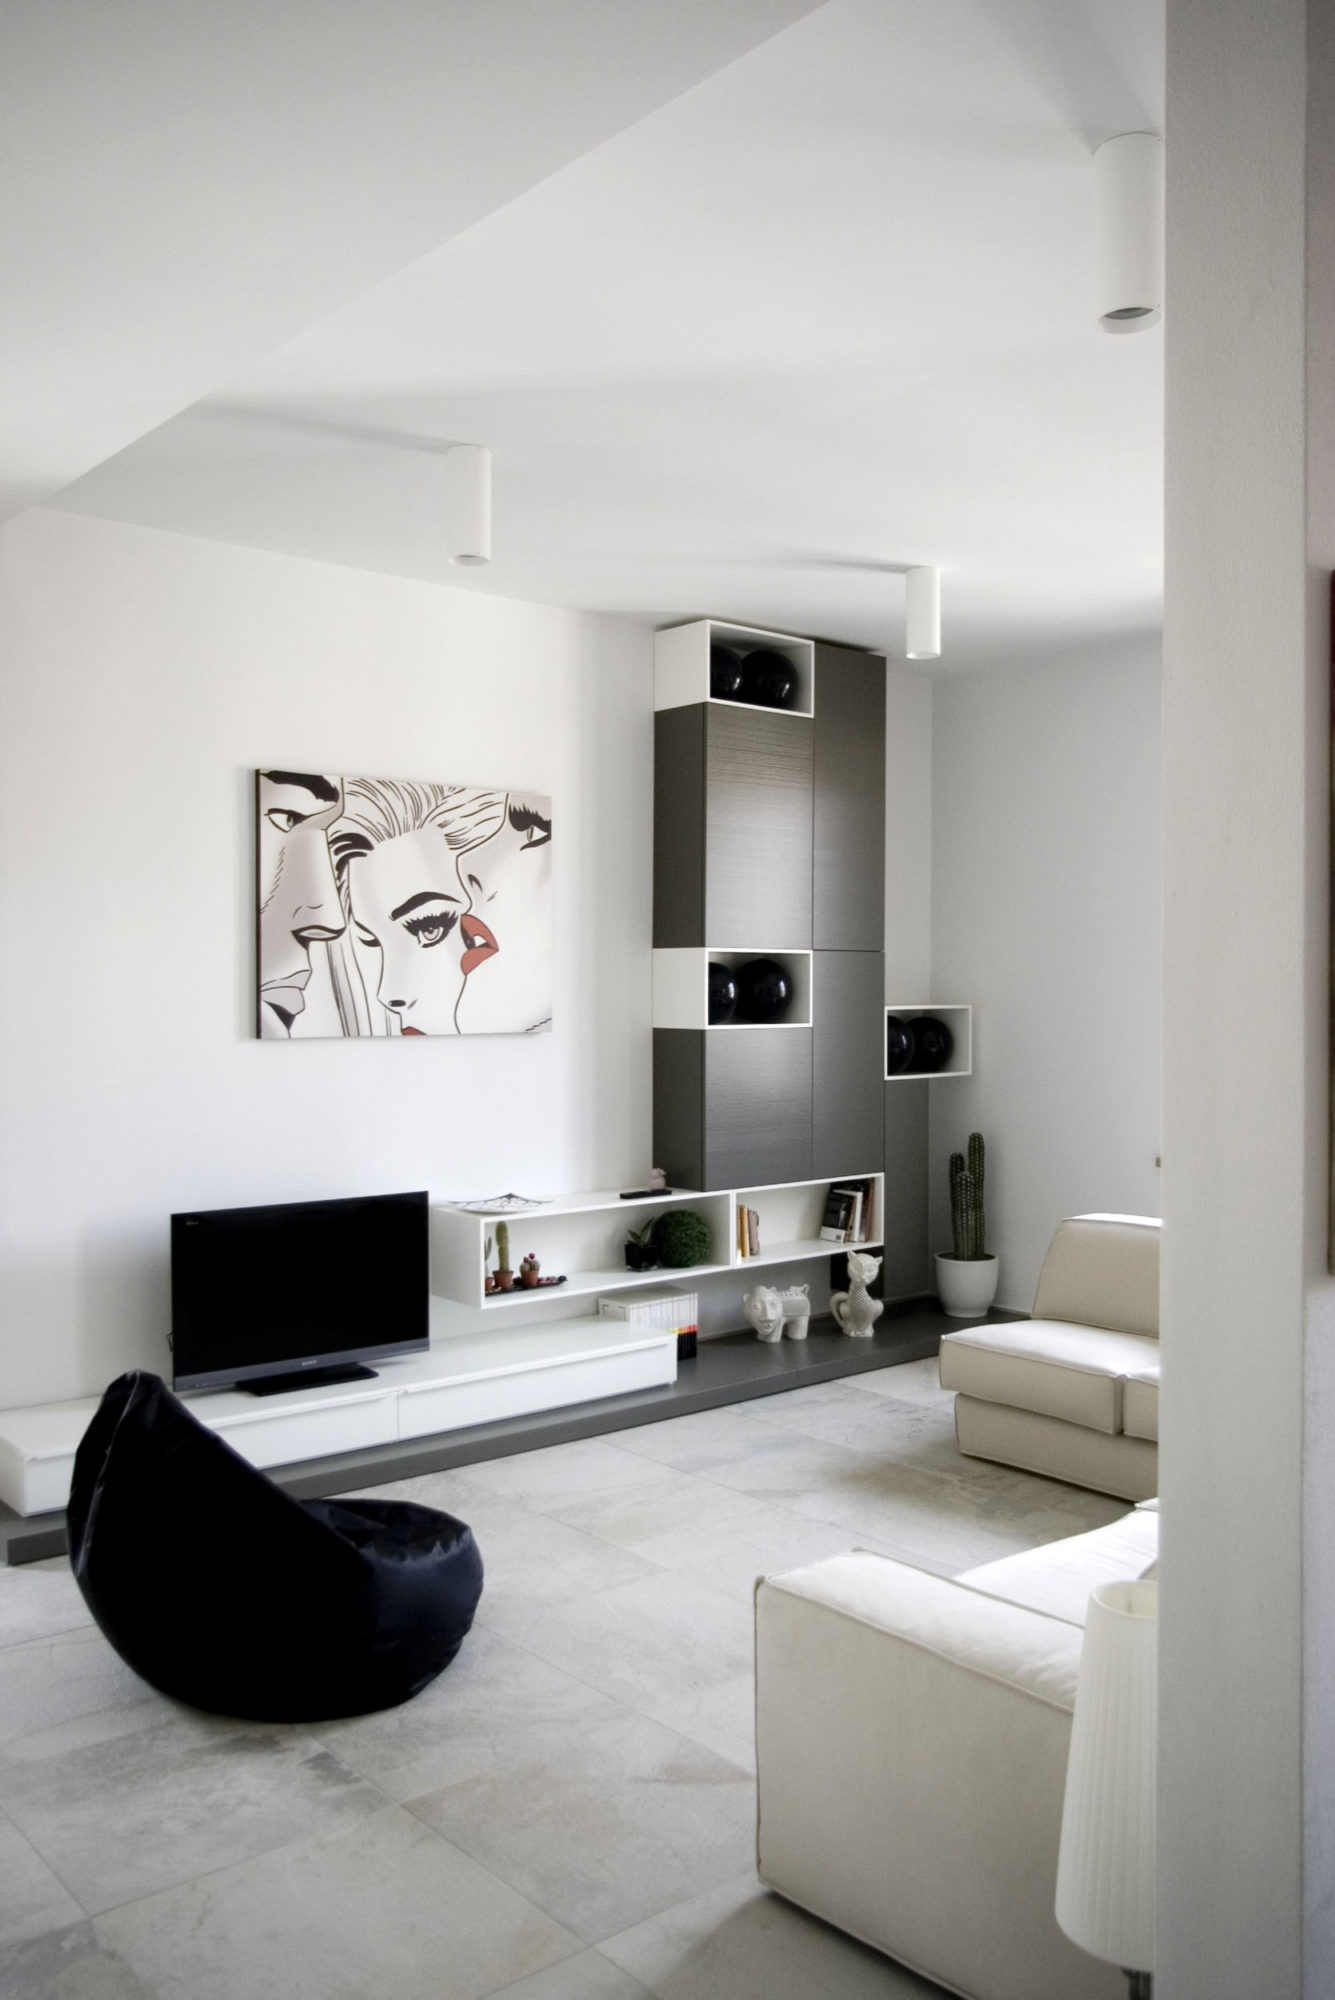 Minimalist interior by msx2 architettura Contemporary italian interior design